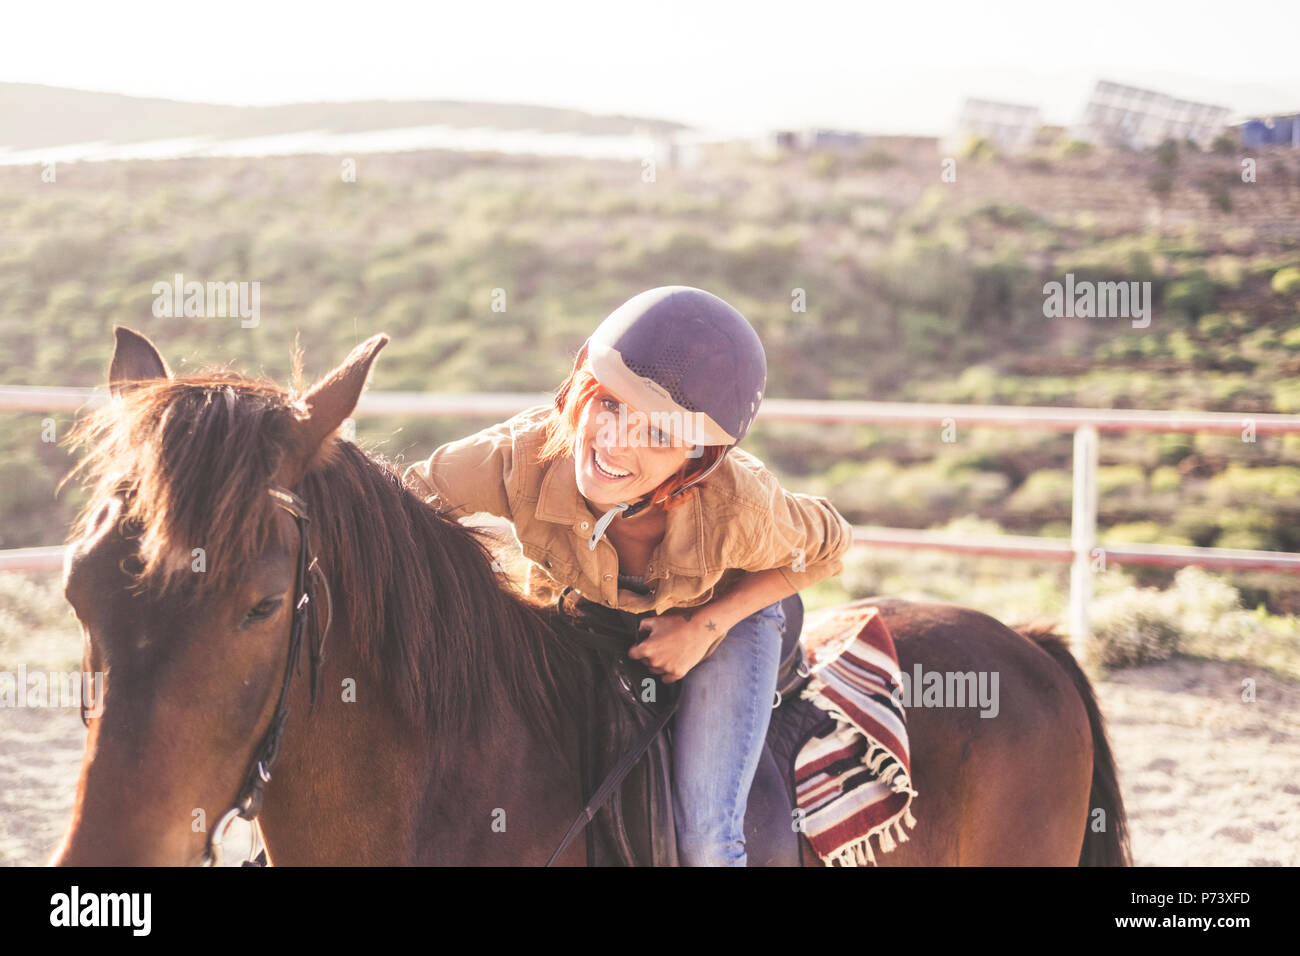 ride with a helmet for a beautiful attractive young woman with nice smile. jeans and casual clothes for outdoor girls in leisure activity with brown h - Stock Image